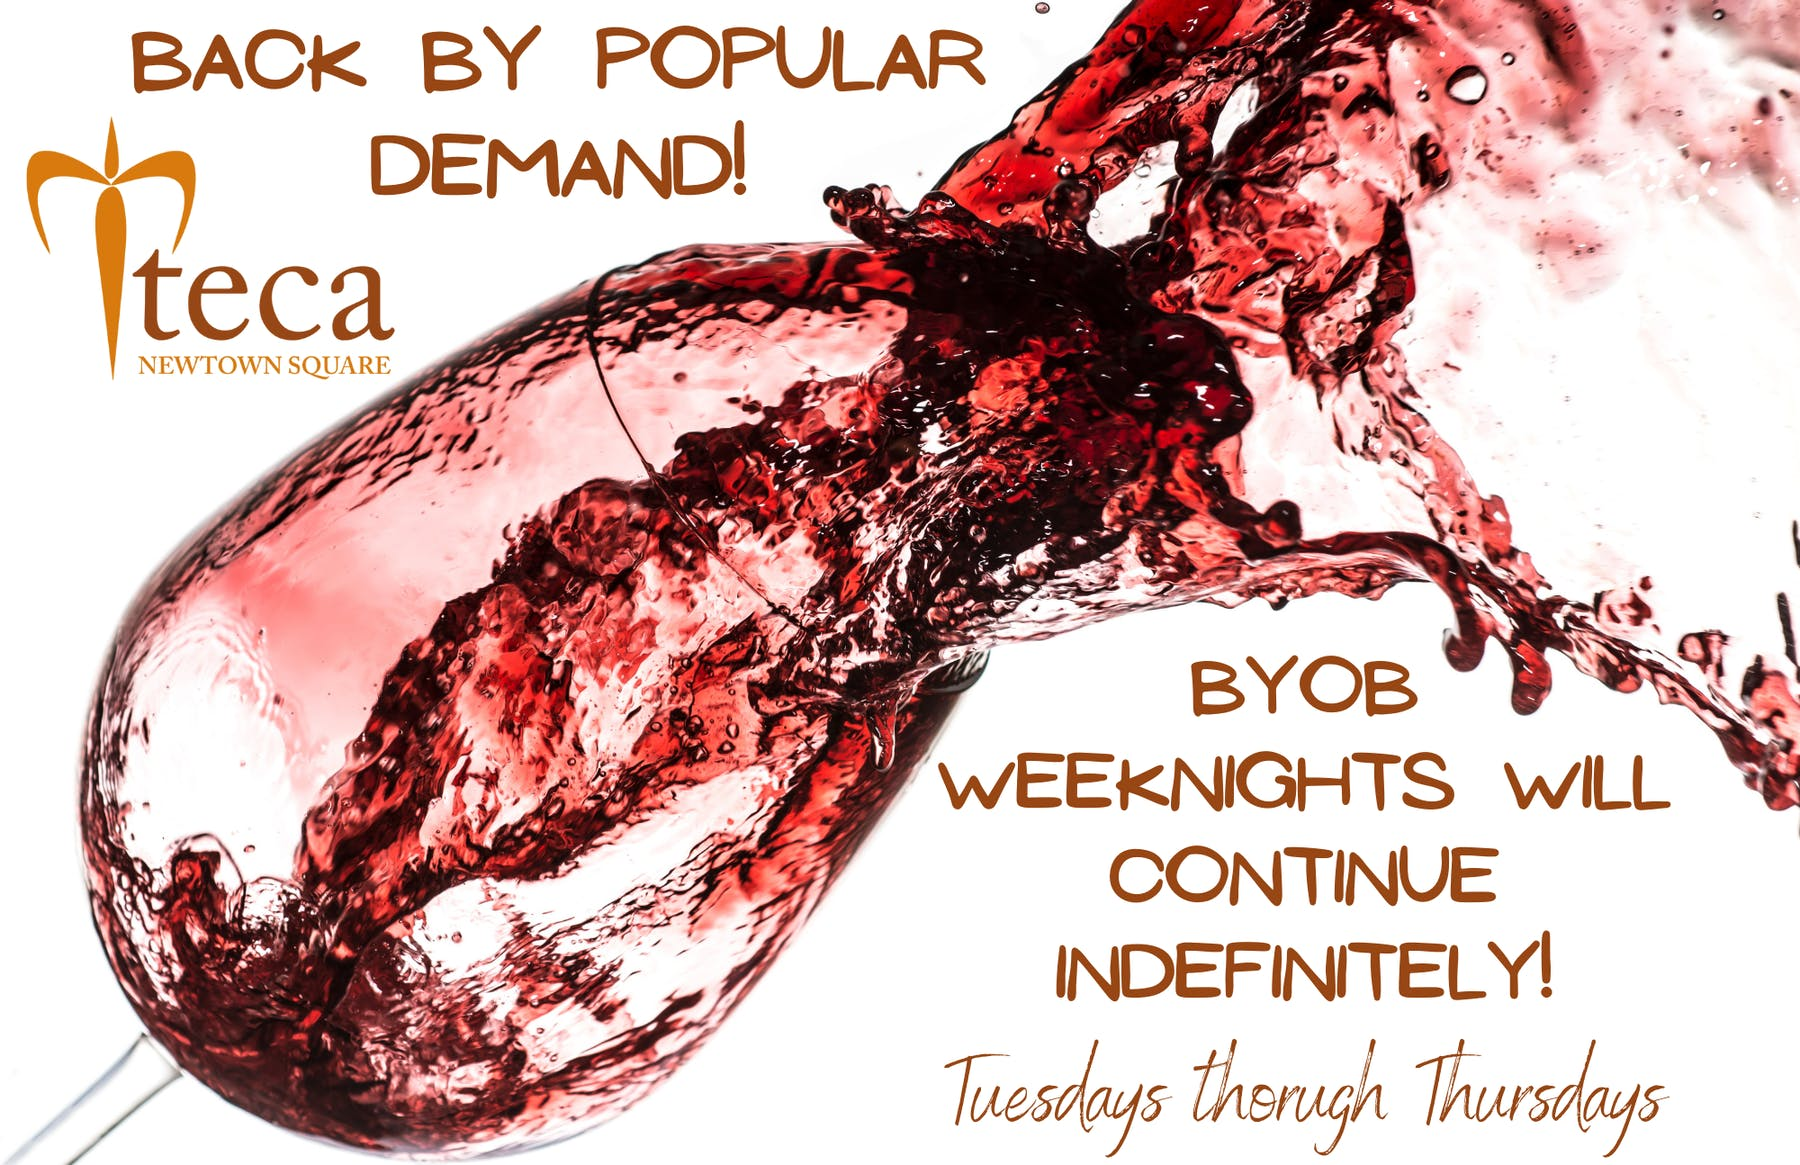 Bring Your Own Wine Night Flyer